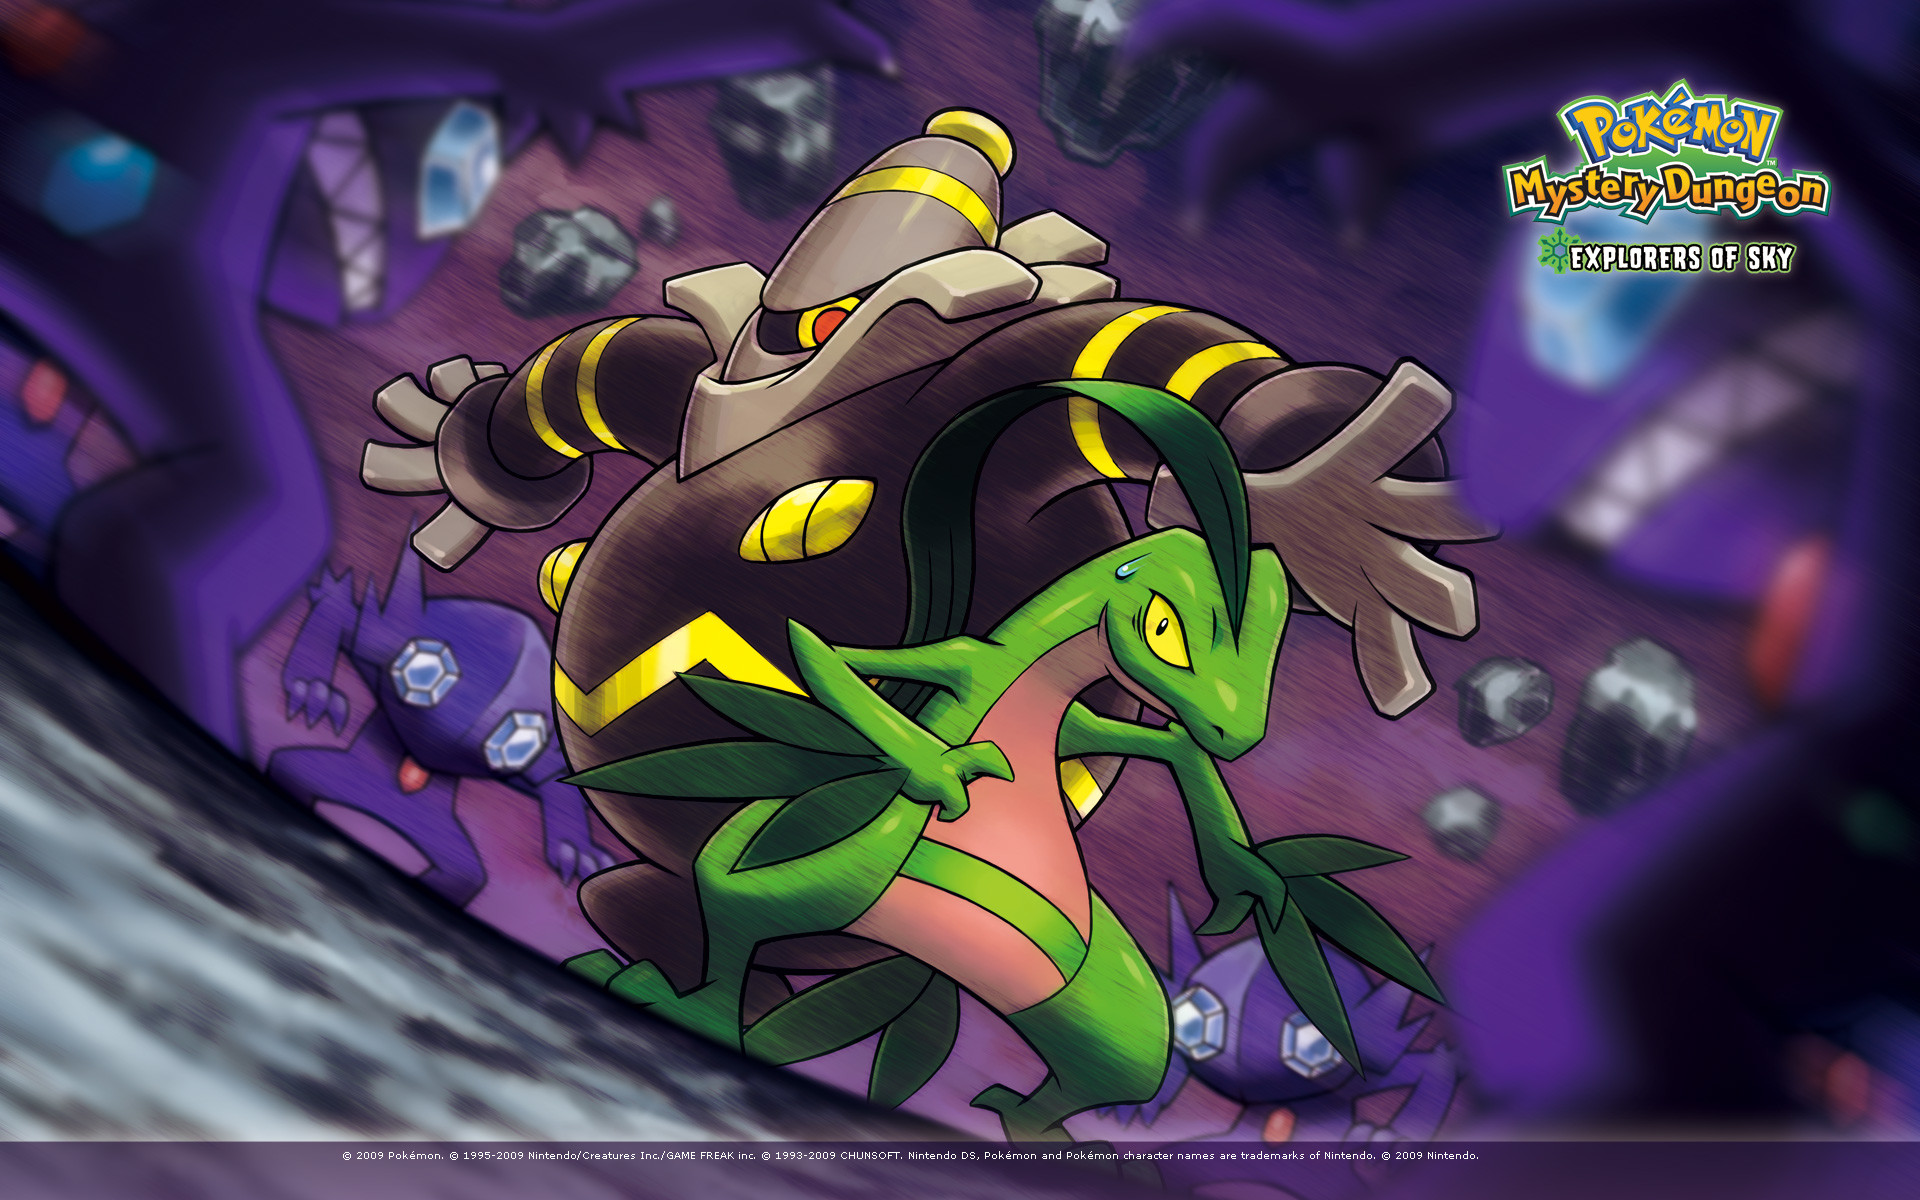 Res: 1920x1200, Pokmon Mystery Dungeon Explorers of Sky Wallpaper 5